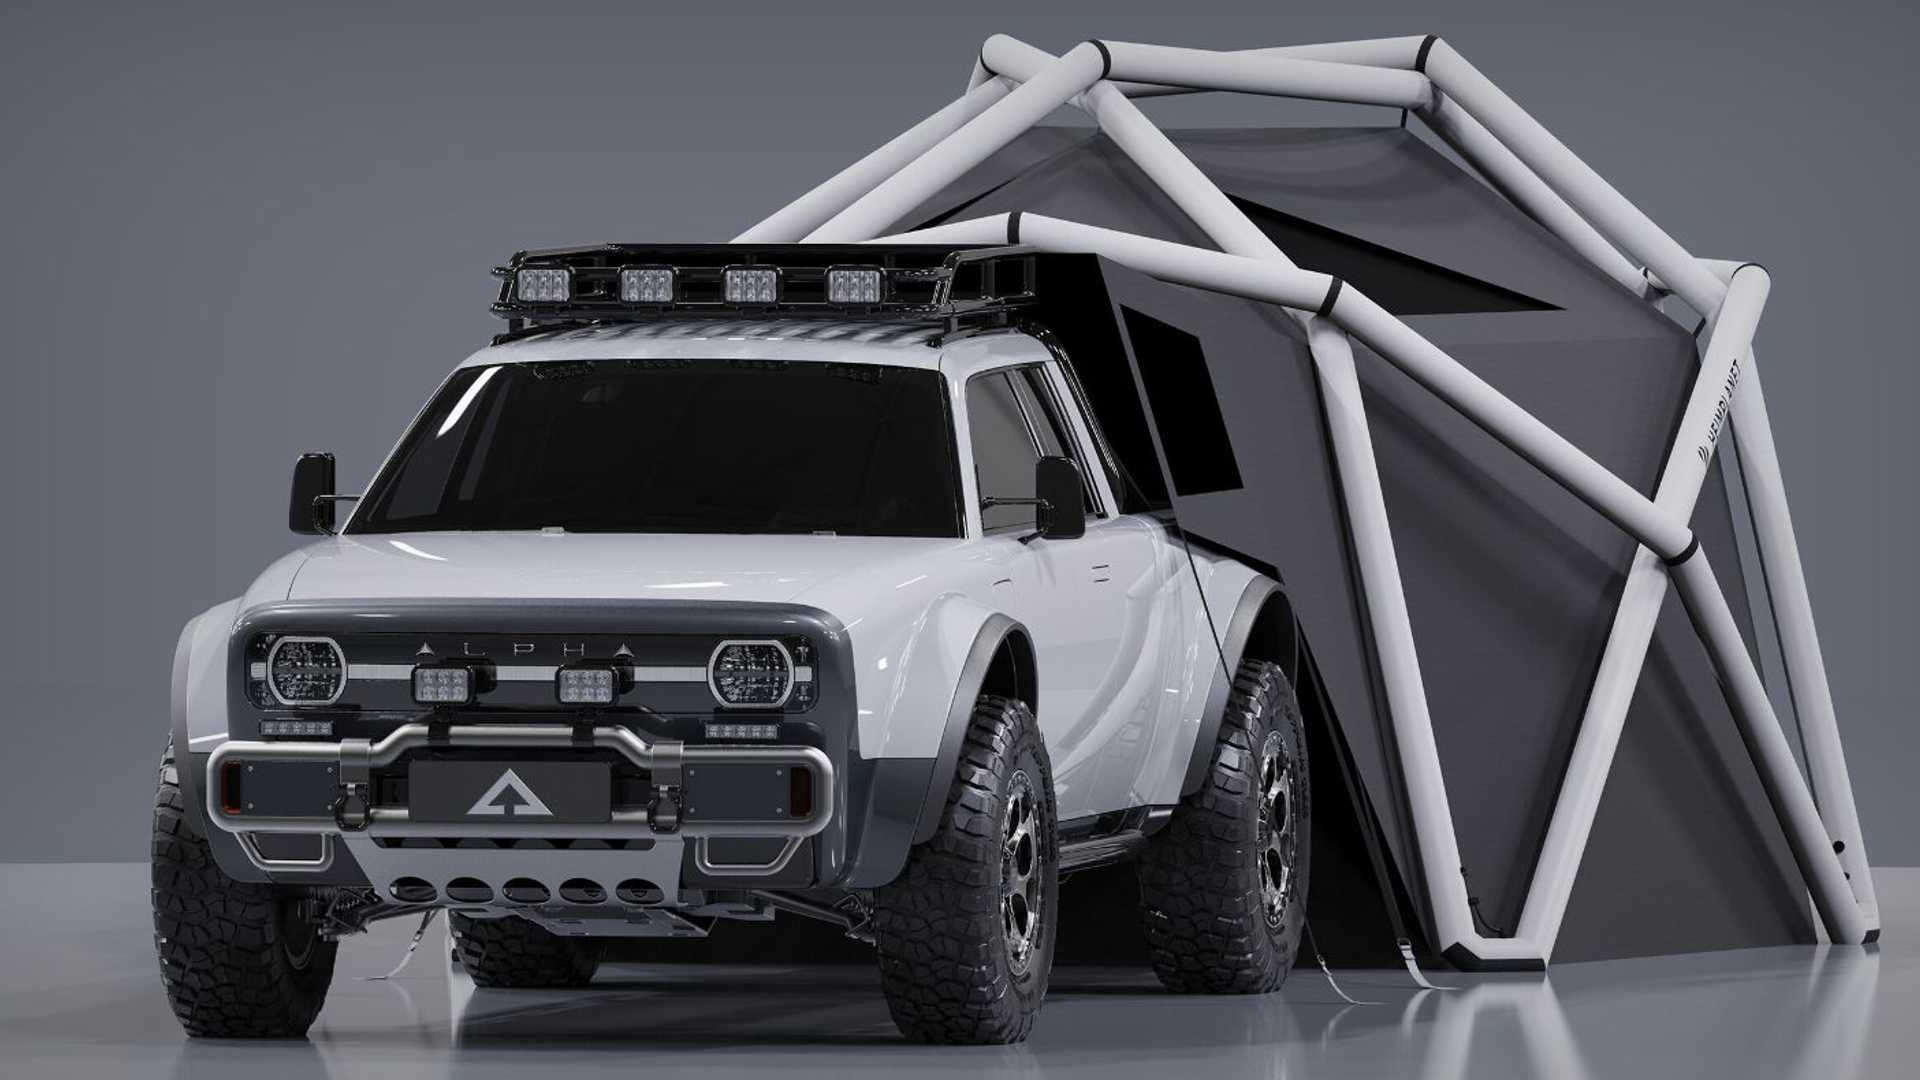 Budding carmaker Alpha Motors has cooperated with German travel equipment marque Heimplanet to design a camping tent for its upcoming electric mini-truck named Wolf. No launch dates or prices have been revealed so far.